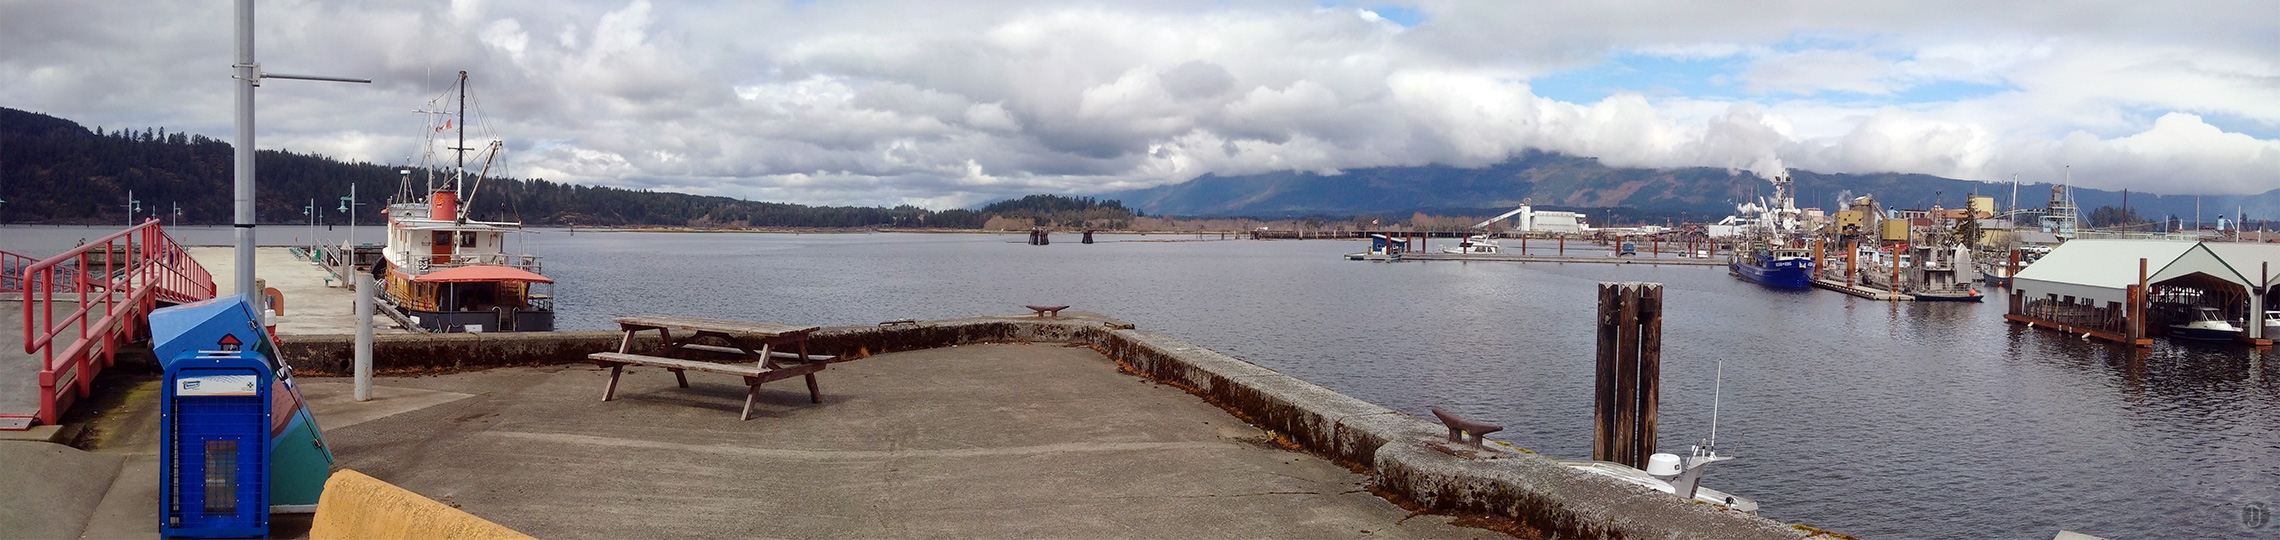 Port Alberni Harbour Panorama